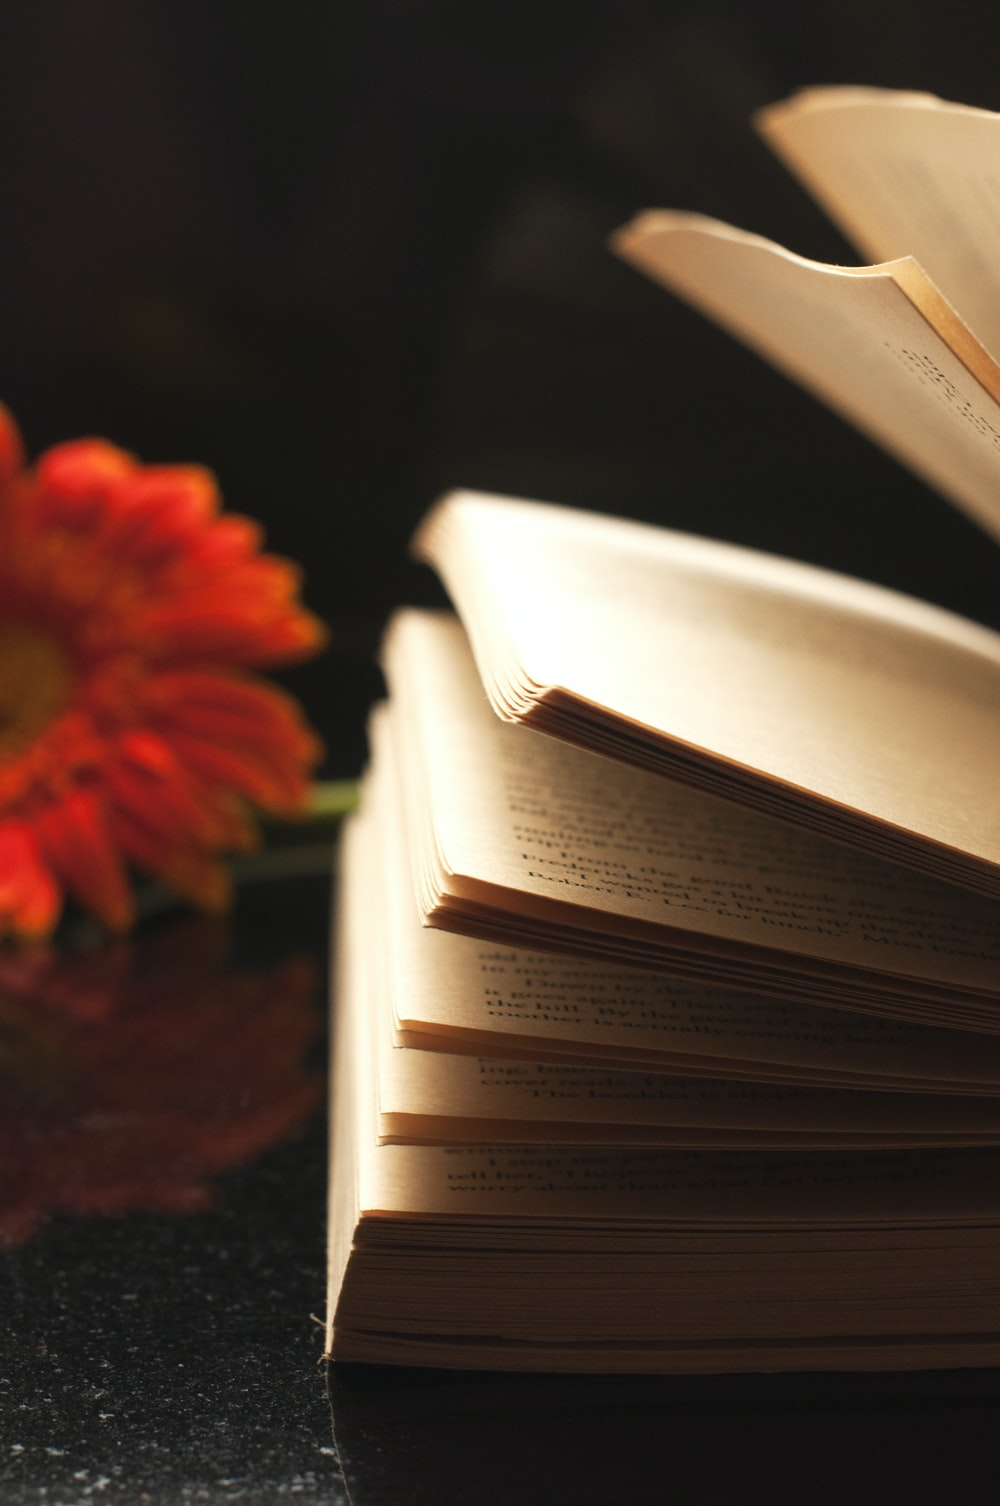 brown labeled book beside flower